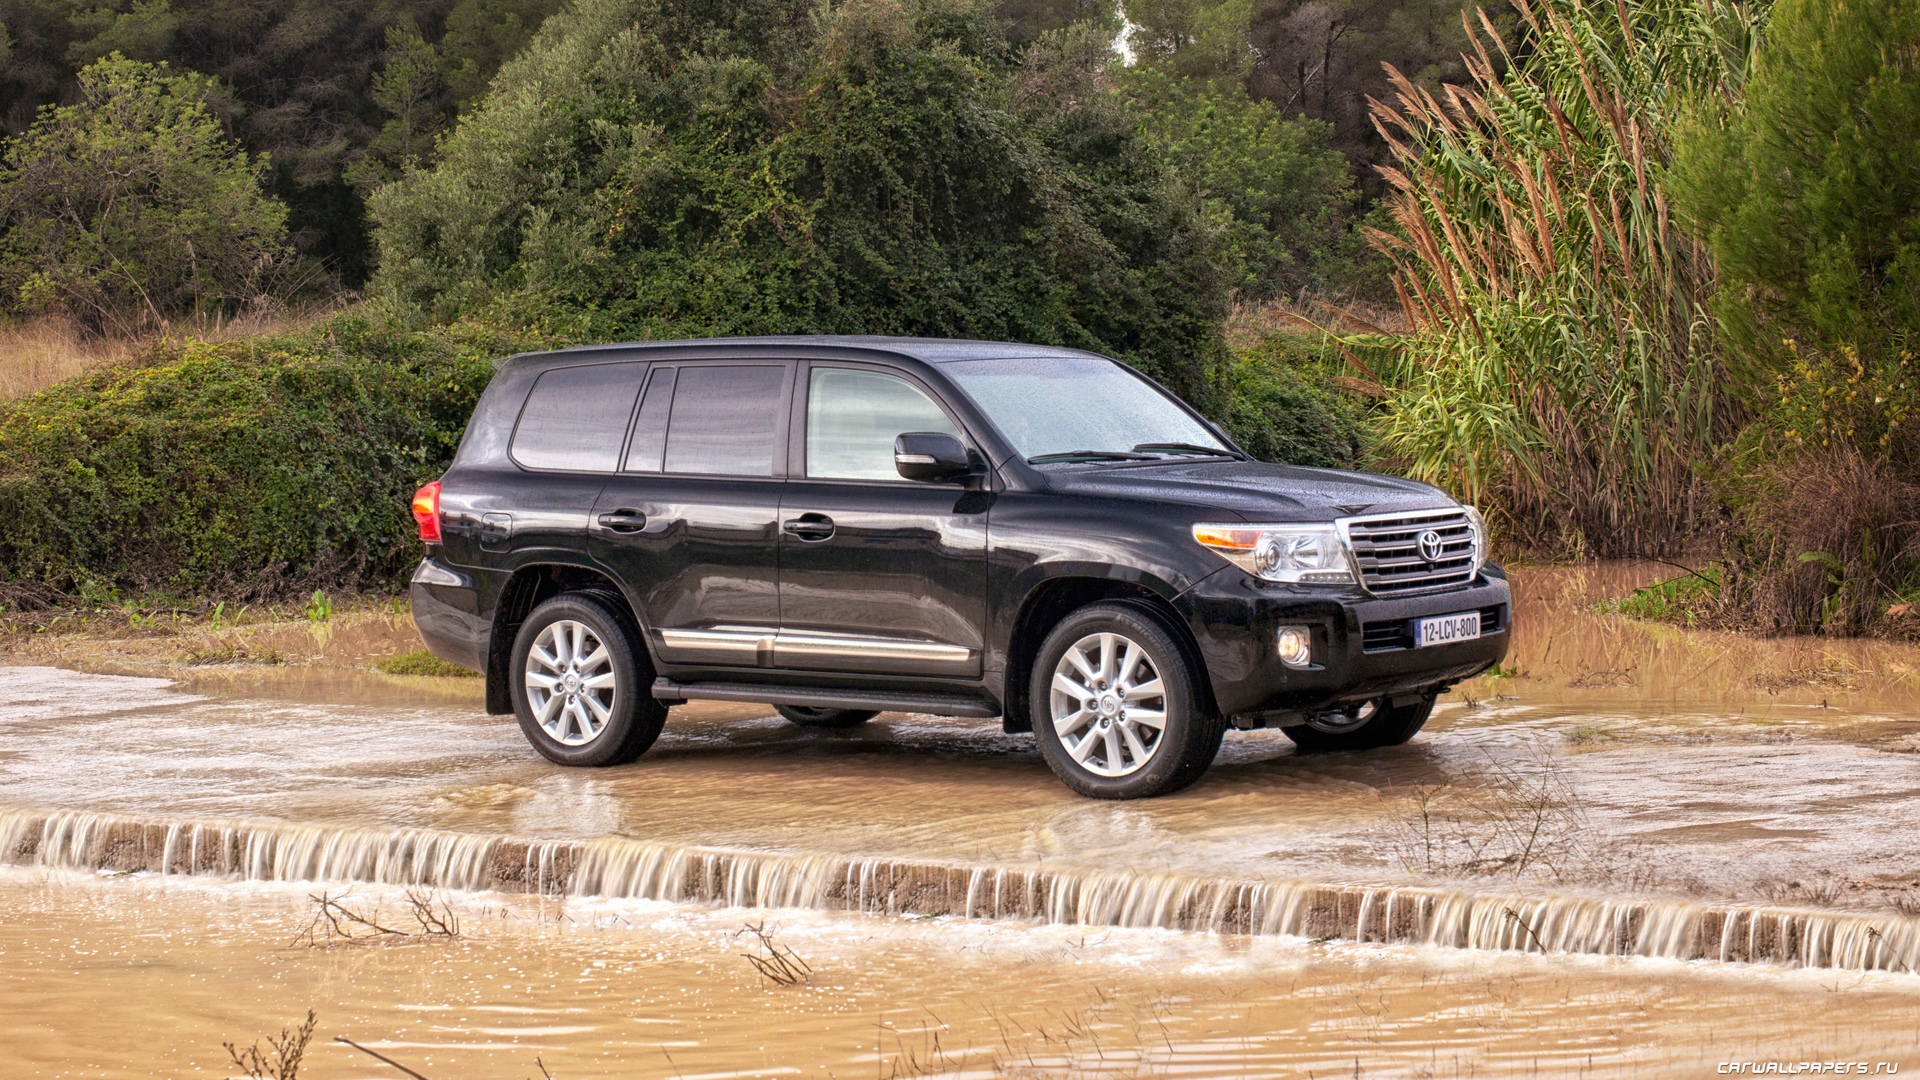 Cars Desktop Wallpapers Toyota Land Cruiser 200 2012